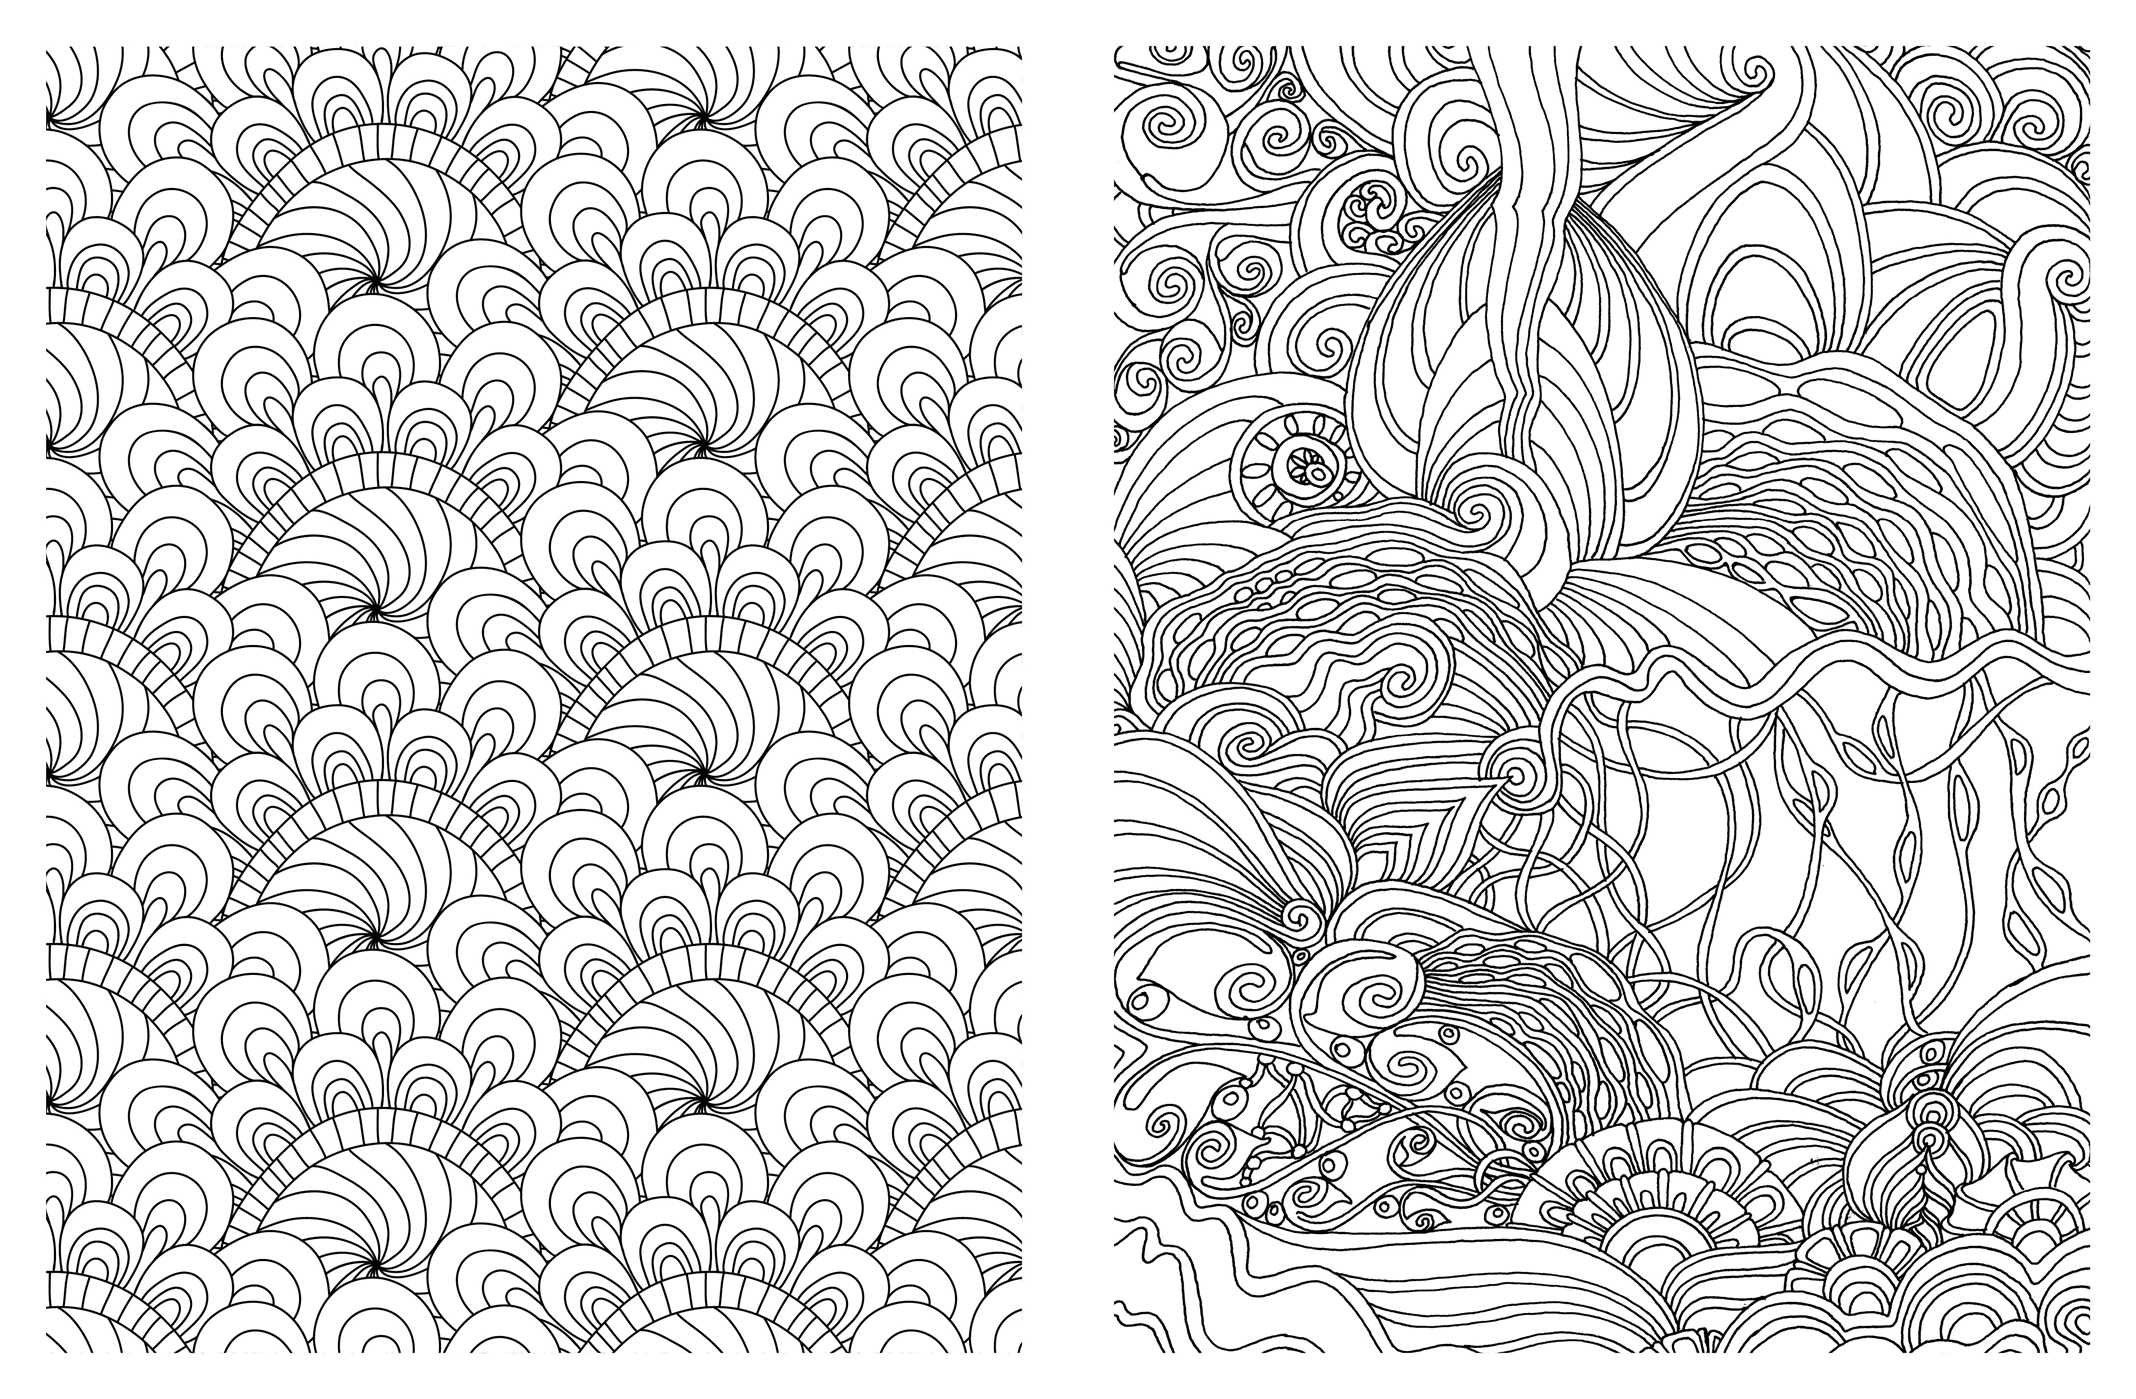 Amazon.com: Posh Adult Coloring Book: Soothing Designs for Fun and ...